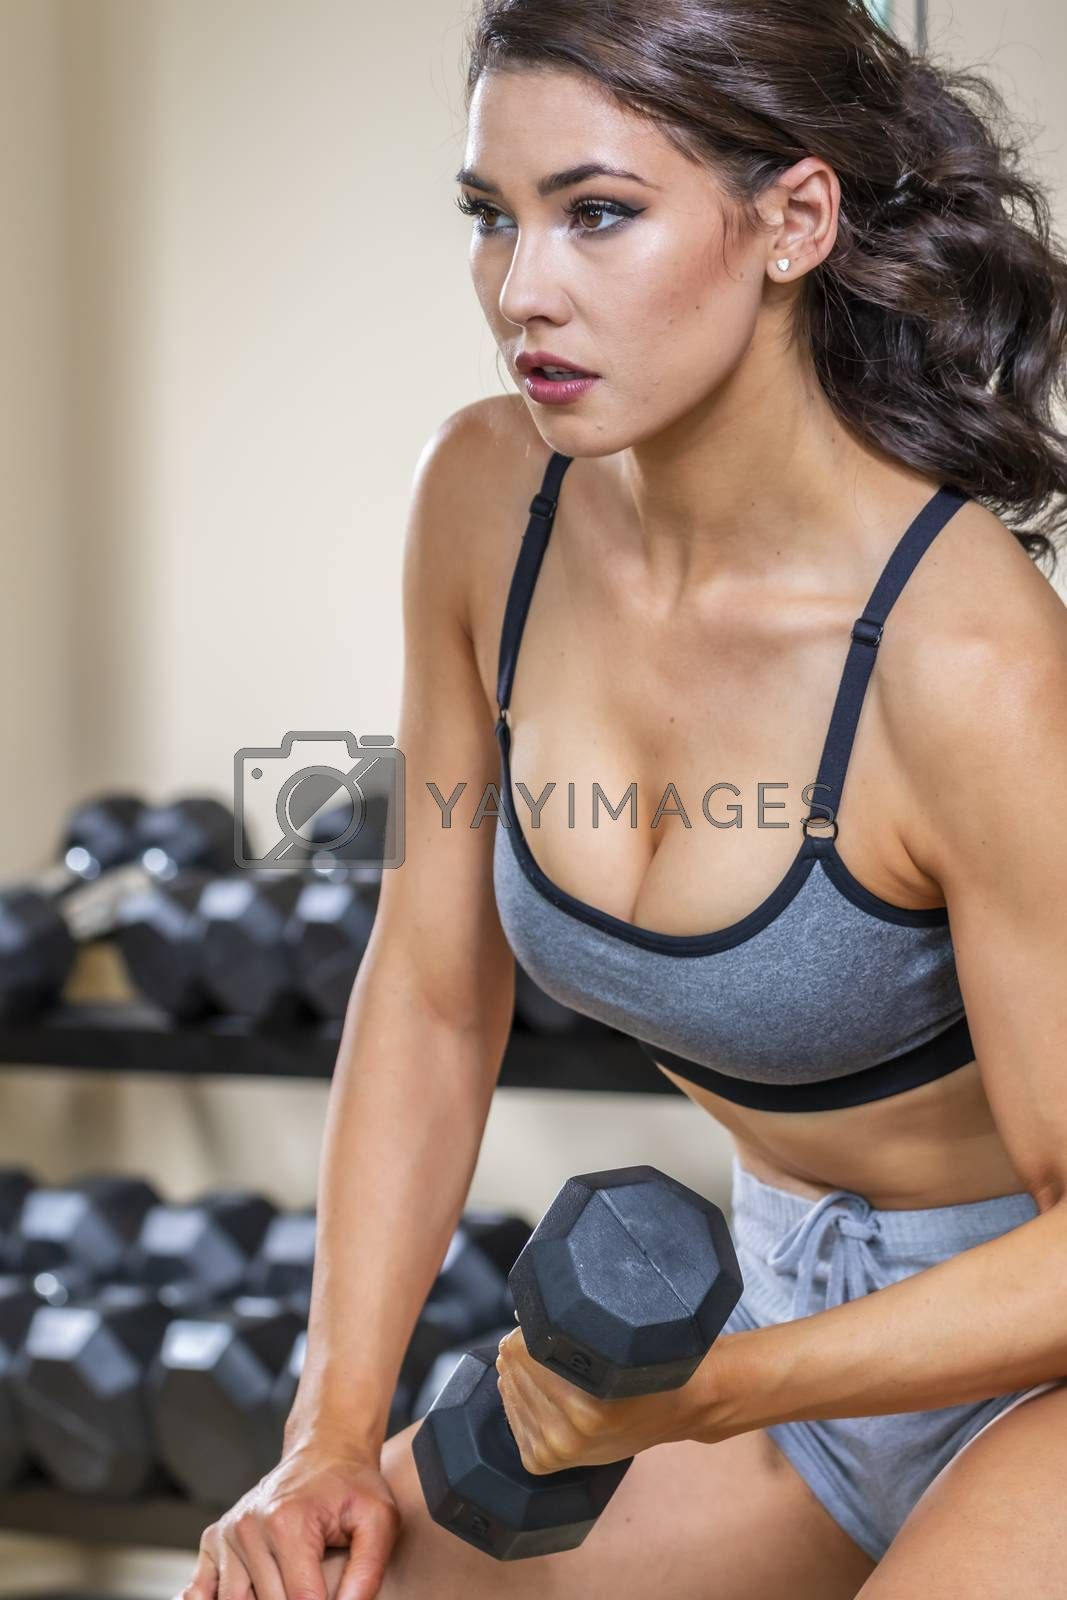 Gorgeous Brunette Fitness Model Working Out In A Studio Environment by actionsports